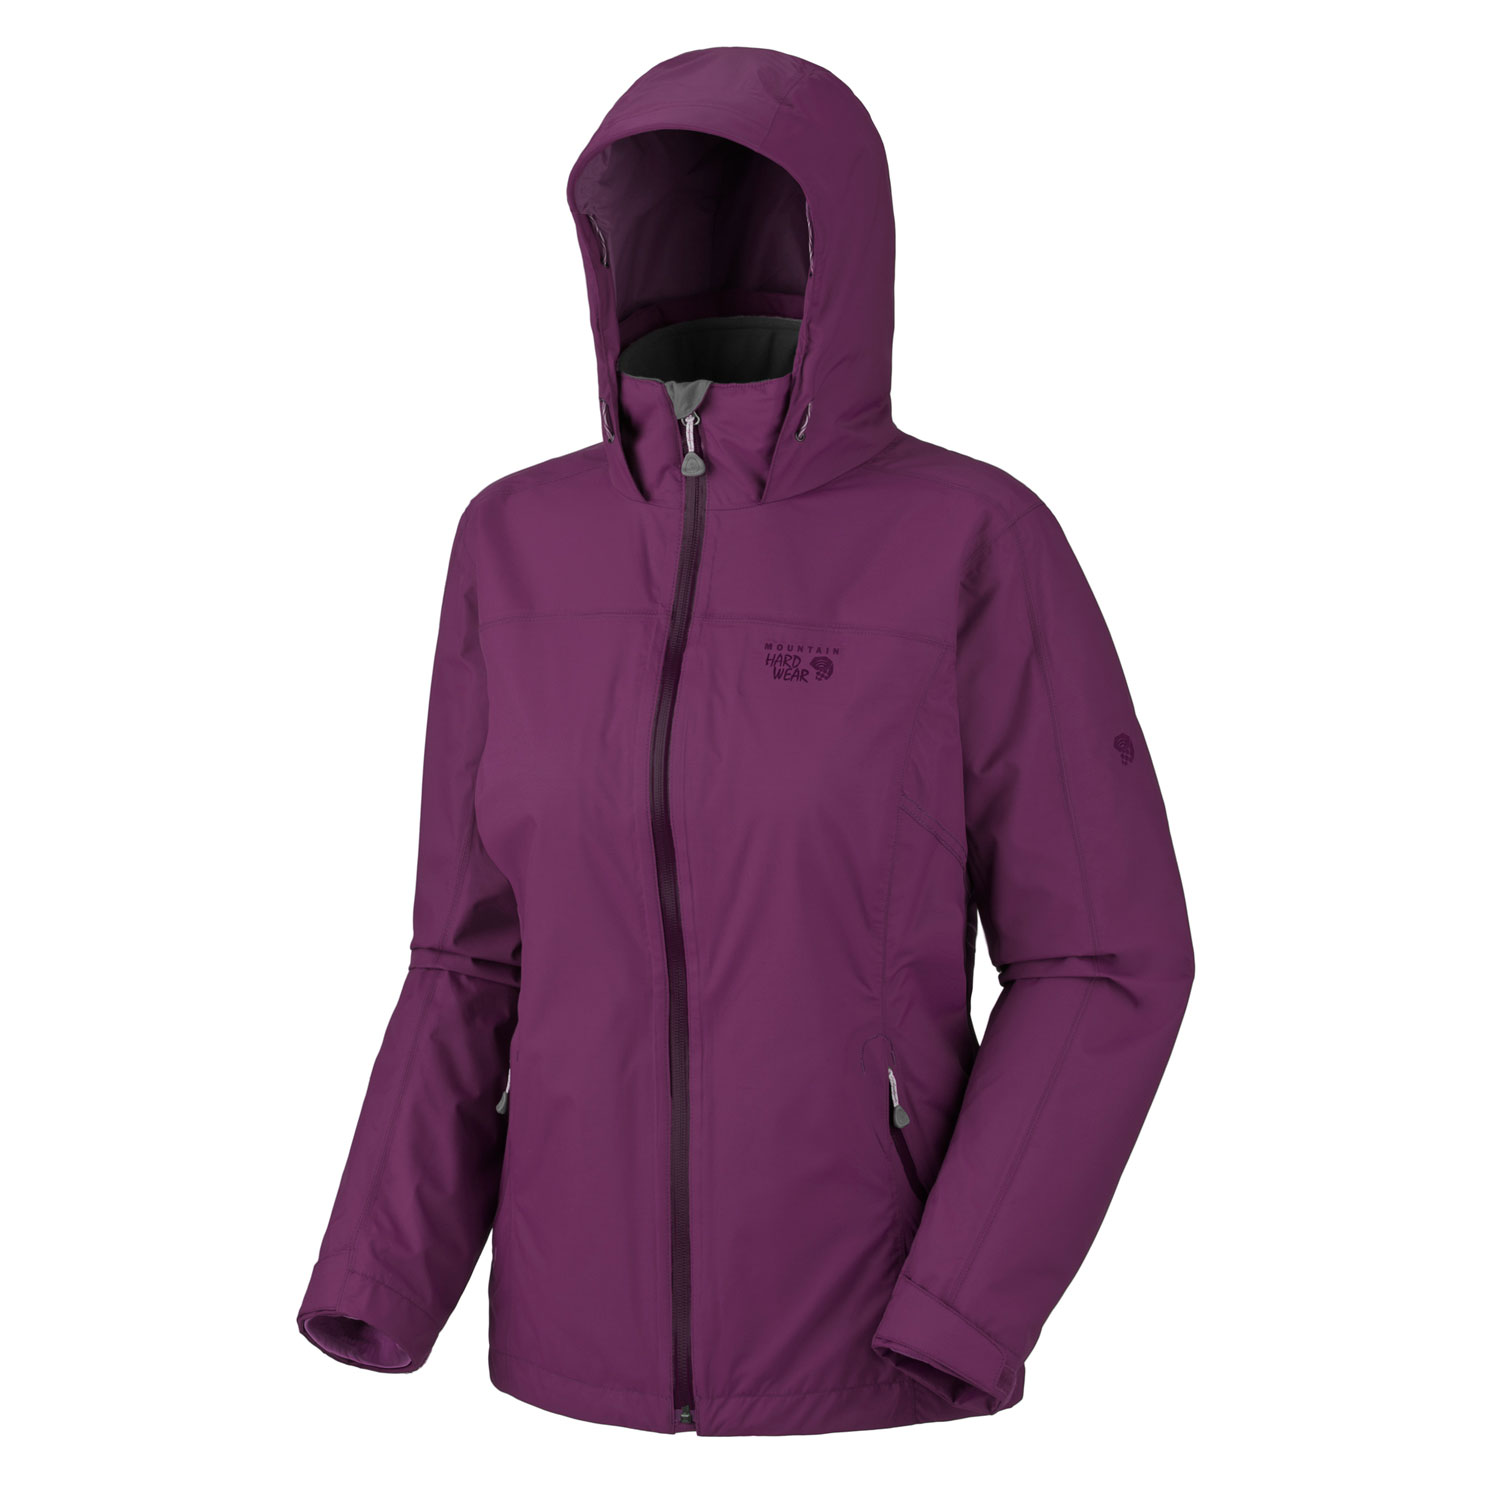 Mountain Hardwear Anaka Trifecta 3-In-1 Jacket Bramble - $178.95